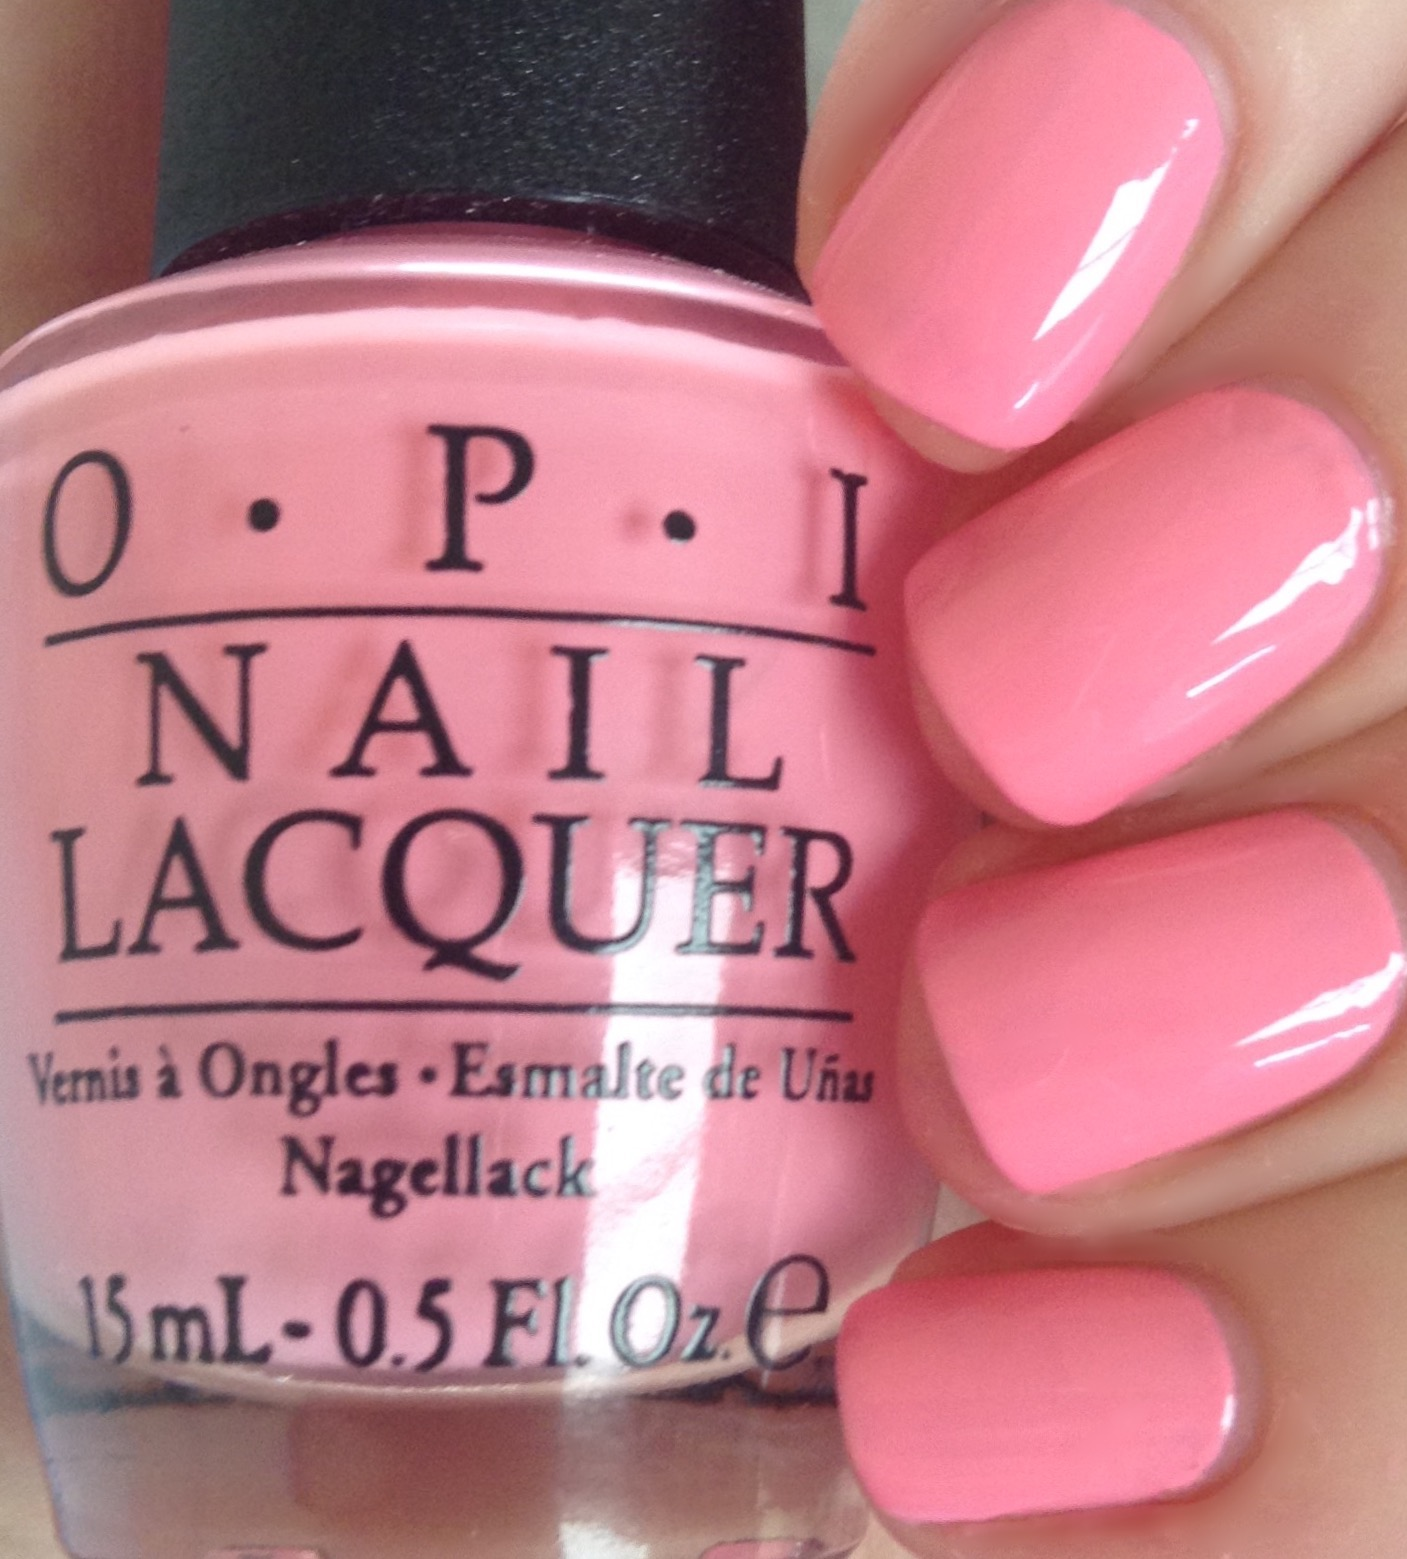 Suzie Nails New Orleans Is A Lovely Bright Bubblegum Pink Nail Polish Shade